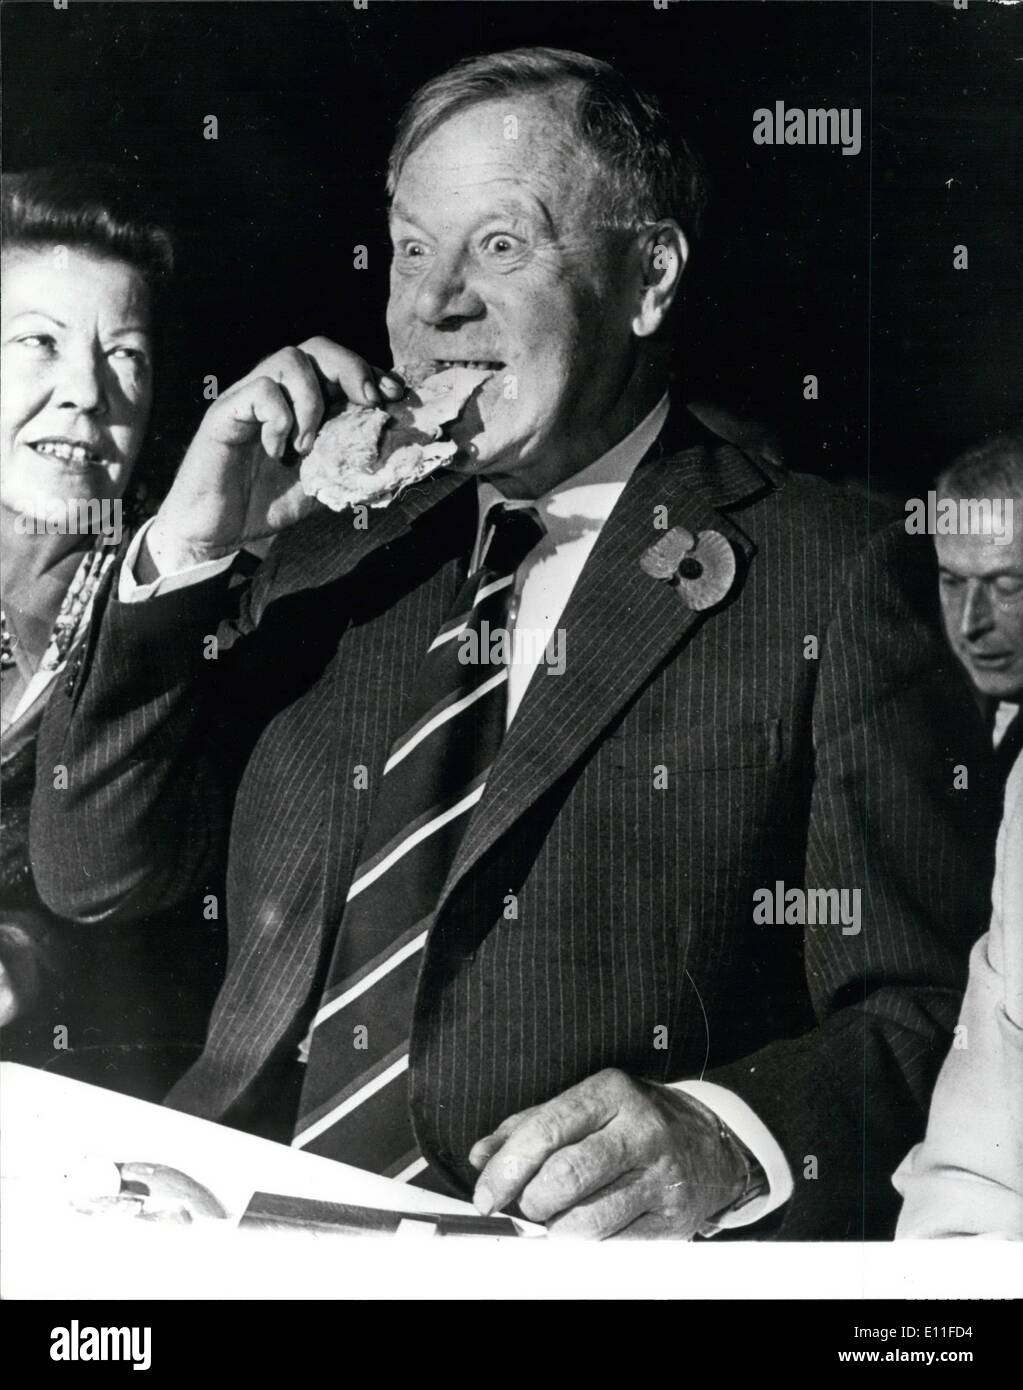 "Oct. 21, 1977 - October 21st 1977 Leyland Chairman Sir Richard Dobson resigns – British Leyland Chairman Sir Richard Dobson has resigned over remarks he made about ""wogs"". The controversial words were spoken during a speech to businessmen at a private lunch. He said ""Who would have thought that the Daily Mail would have the bloody nerve to bribe somebody £5,000 to reveal the documents, which turned out to be forged, in order to accuse the company of the perfectly respectable fact that it was bribing wogs?"" Photo Shows: Sir Richard Dobson seen when he - Stock Image"